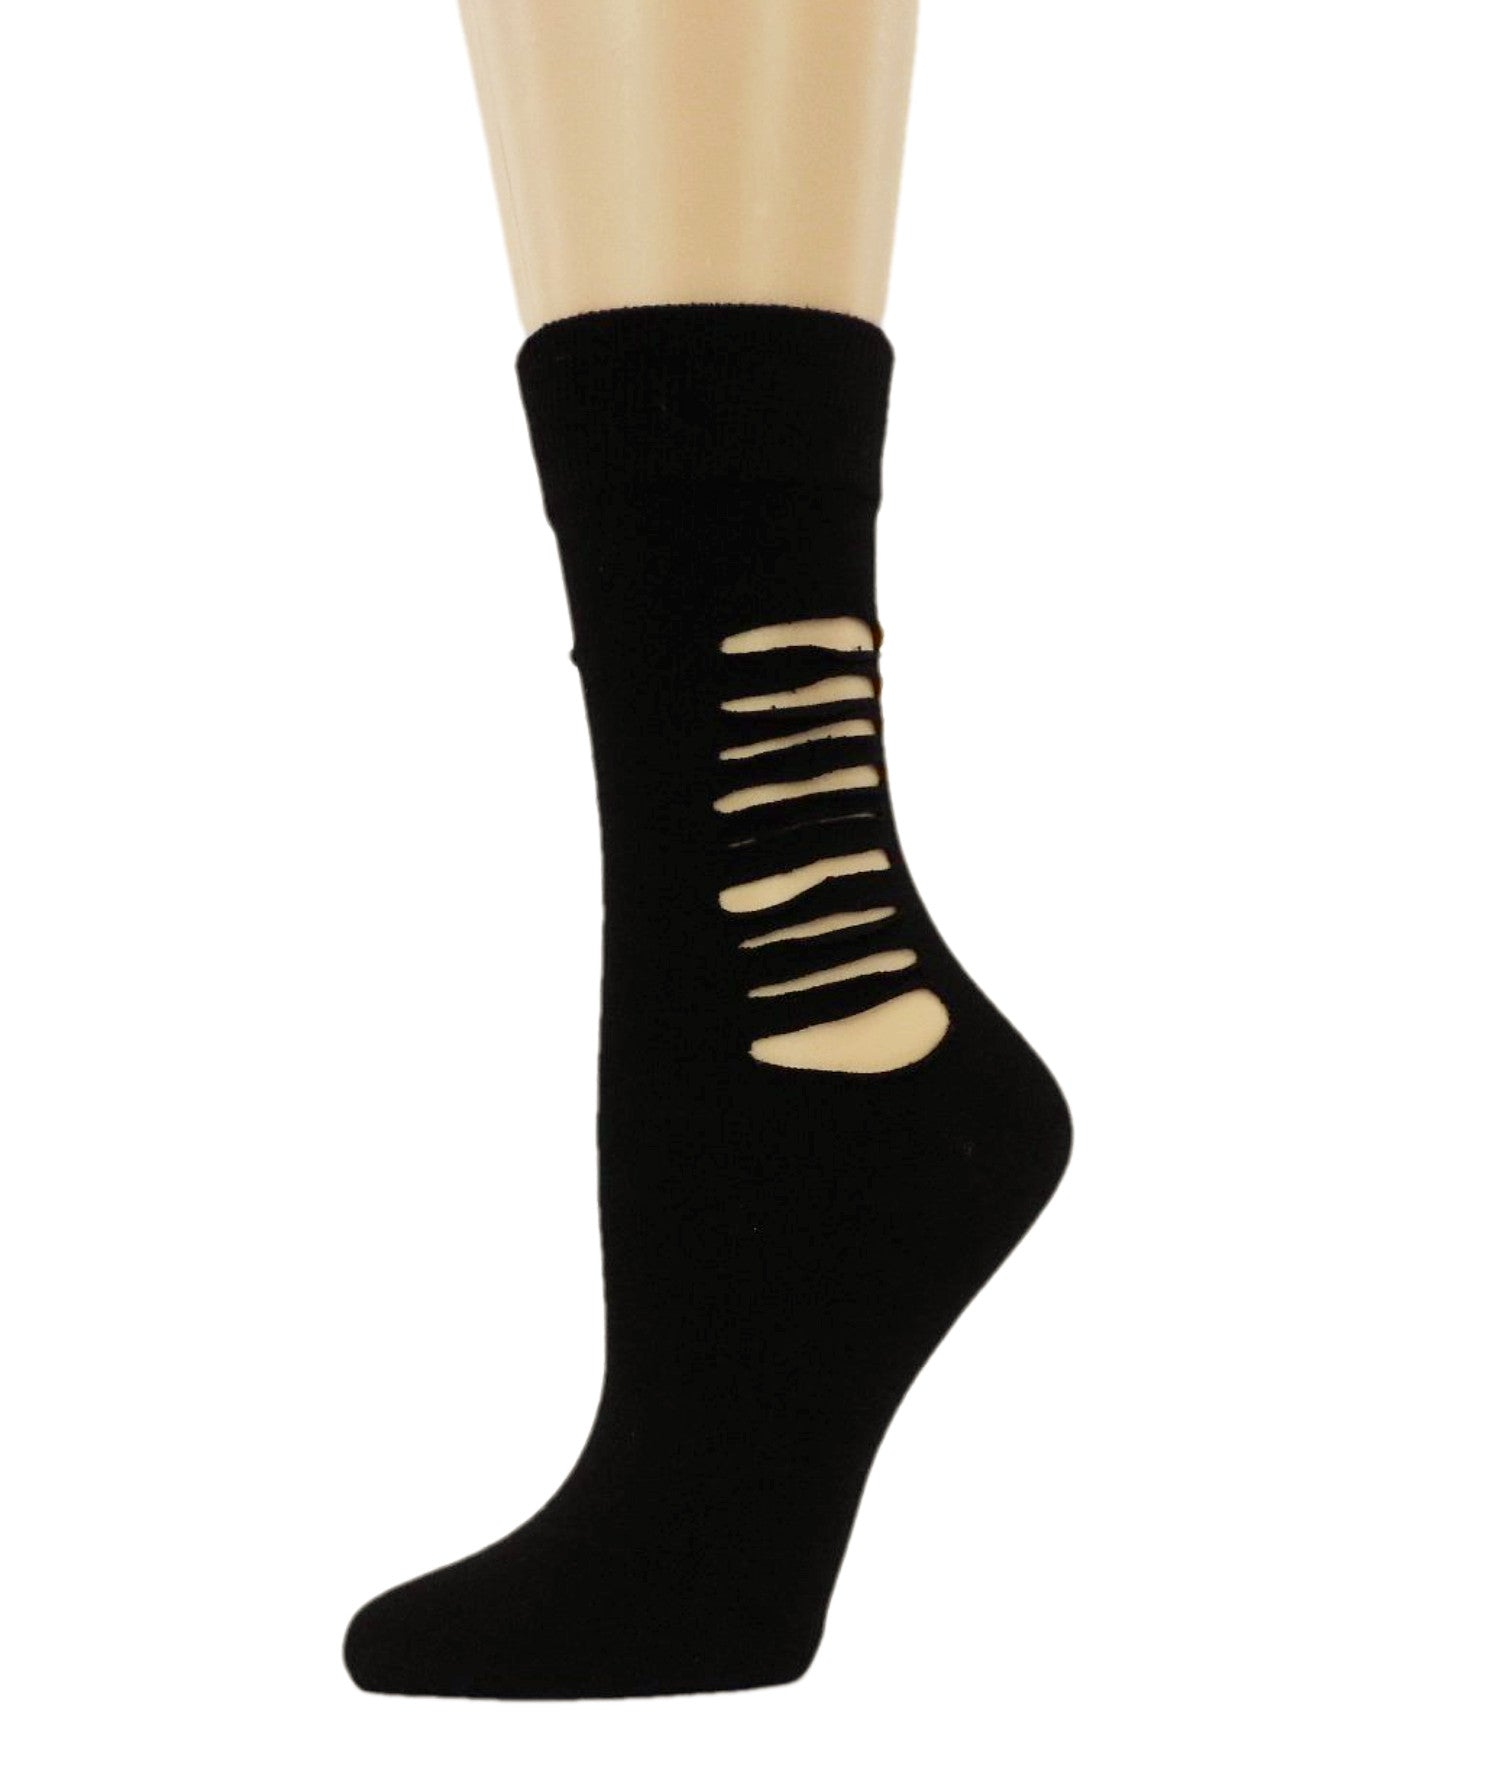 Ripped Midnight Black Cotton Socks - Global Trendz Fashion®